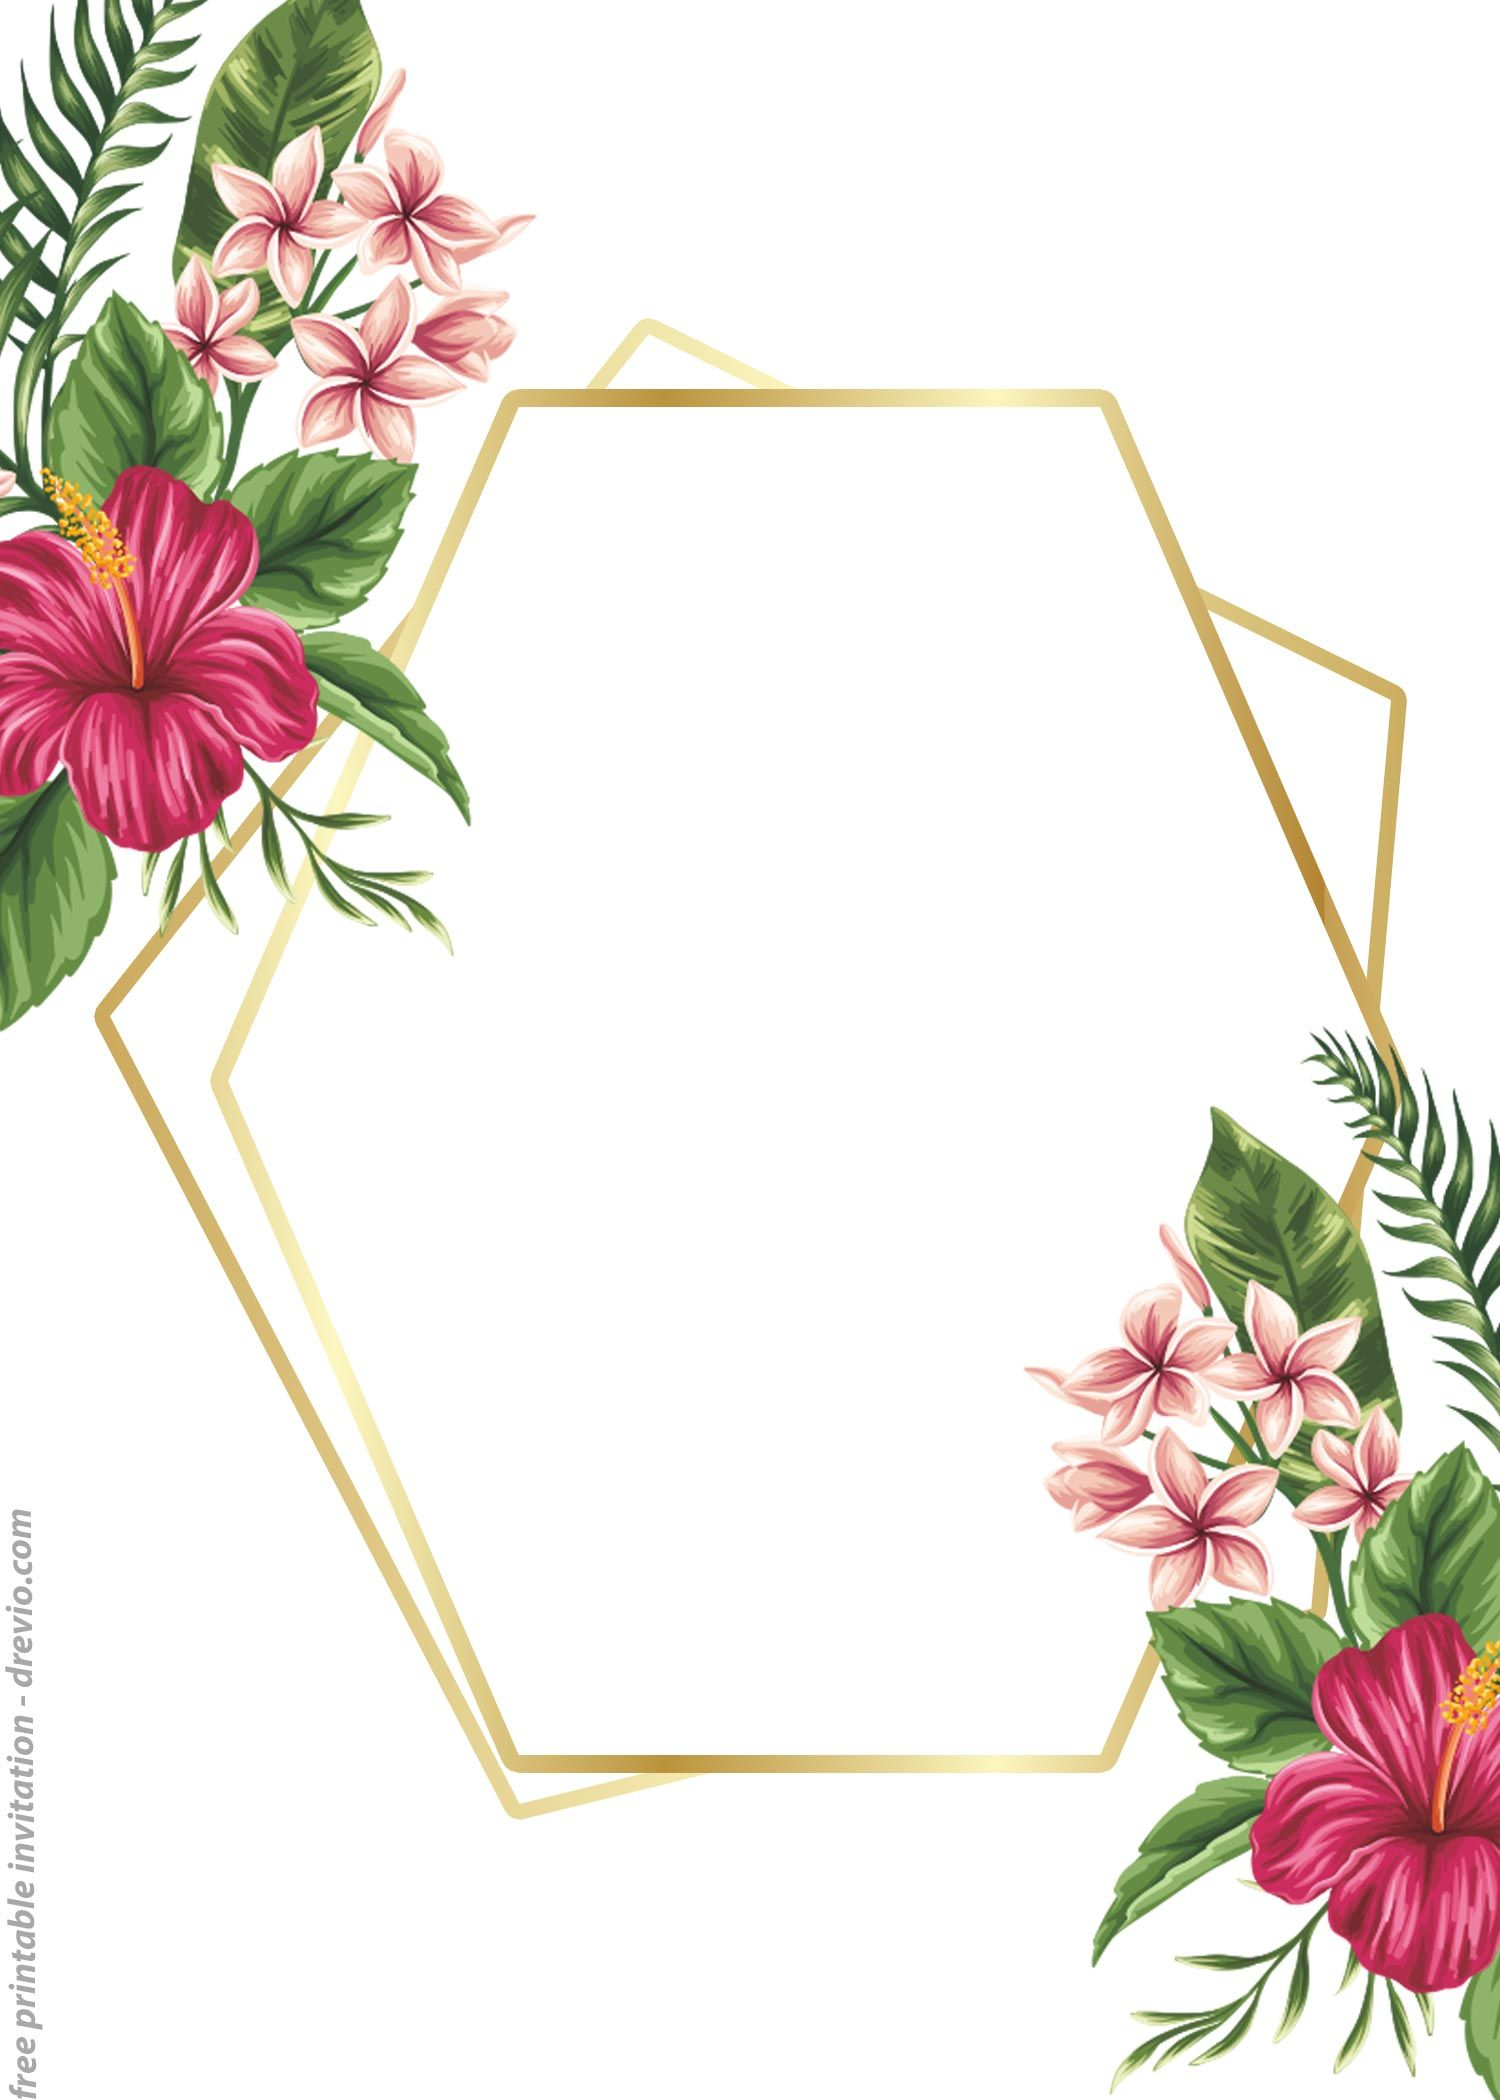 24 Free Printable Floral Watercolor Invitation Templates For Any Occasions Drevio In 2020 Floral Printables Templates Printable Free Floral Invitations Template